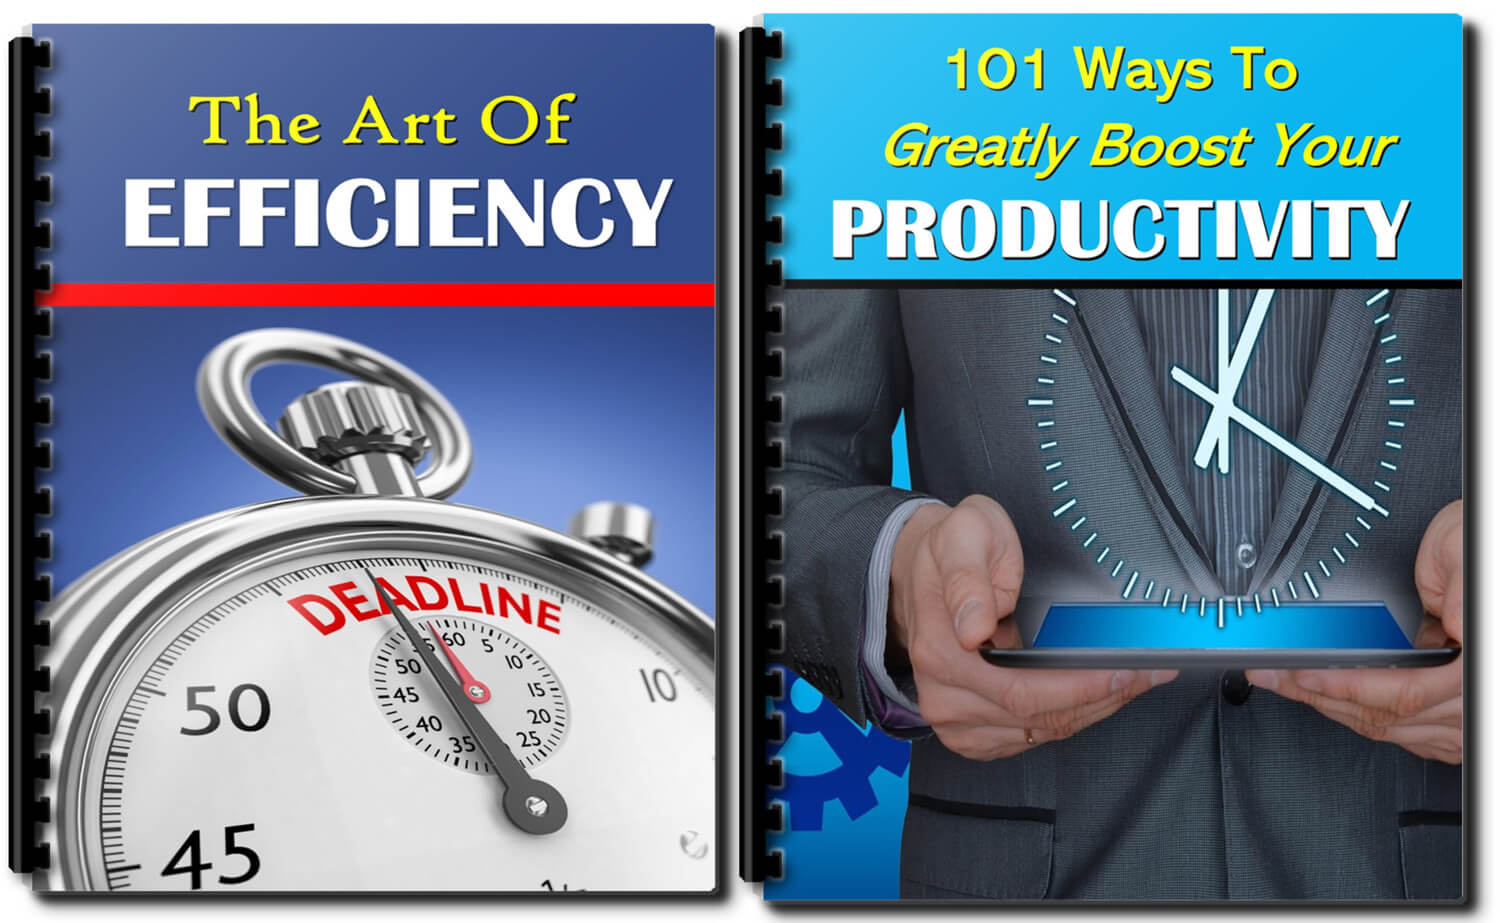 efficiency and productivity PLR